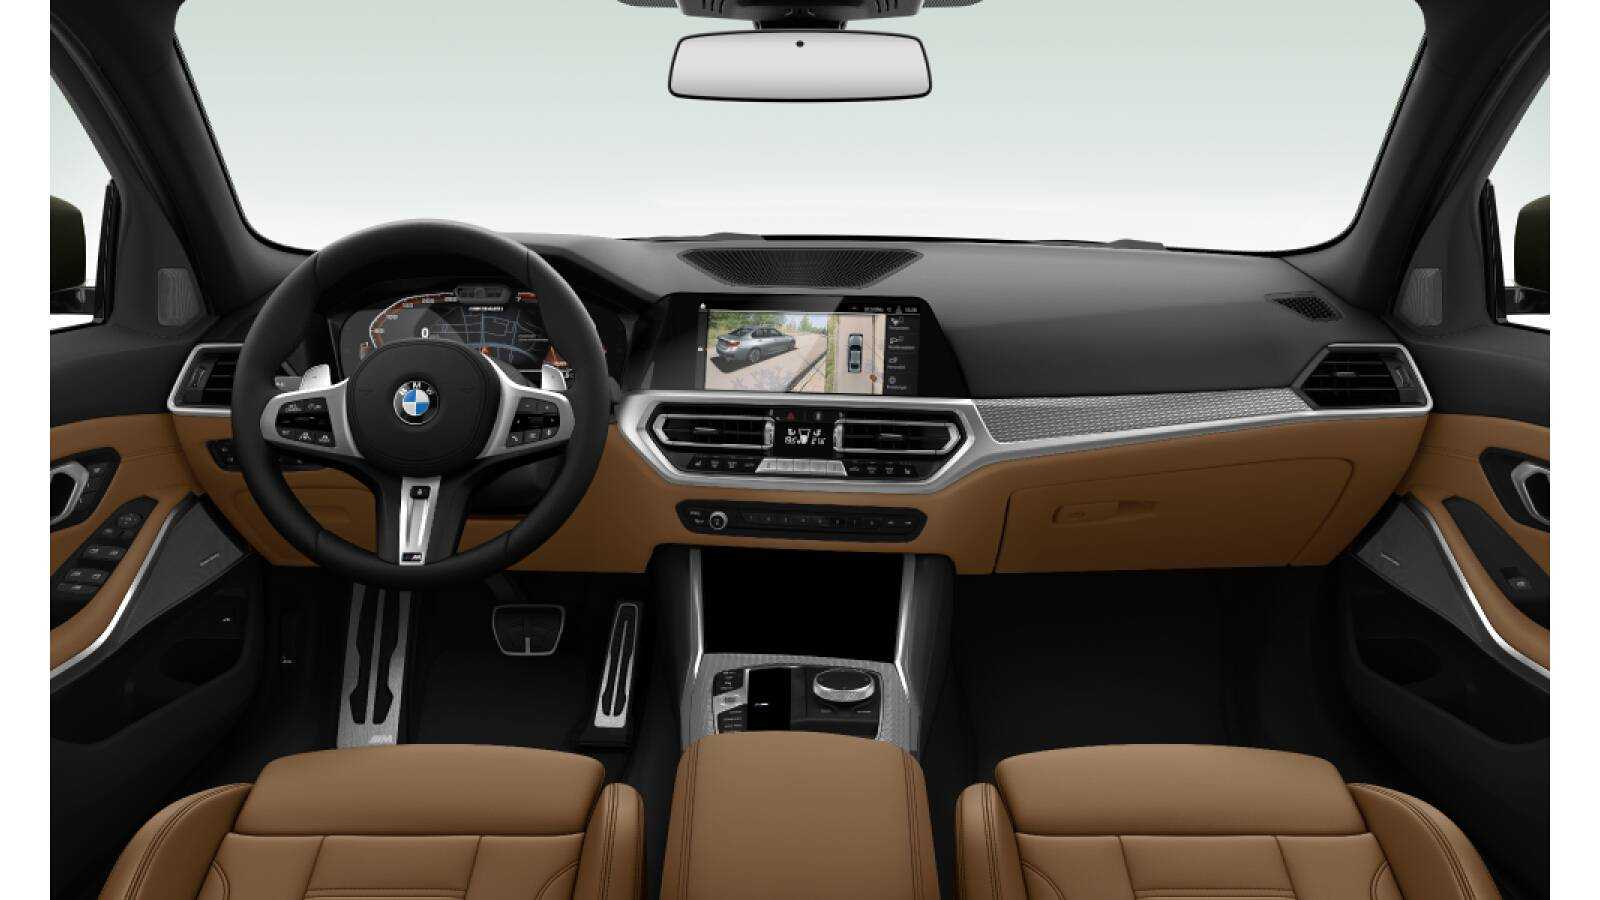 3125d371 2019 Bmw 3 Series Interior 13 Rutamotor